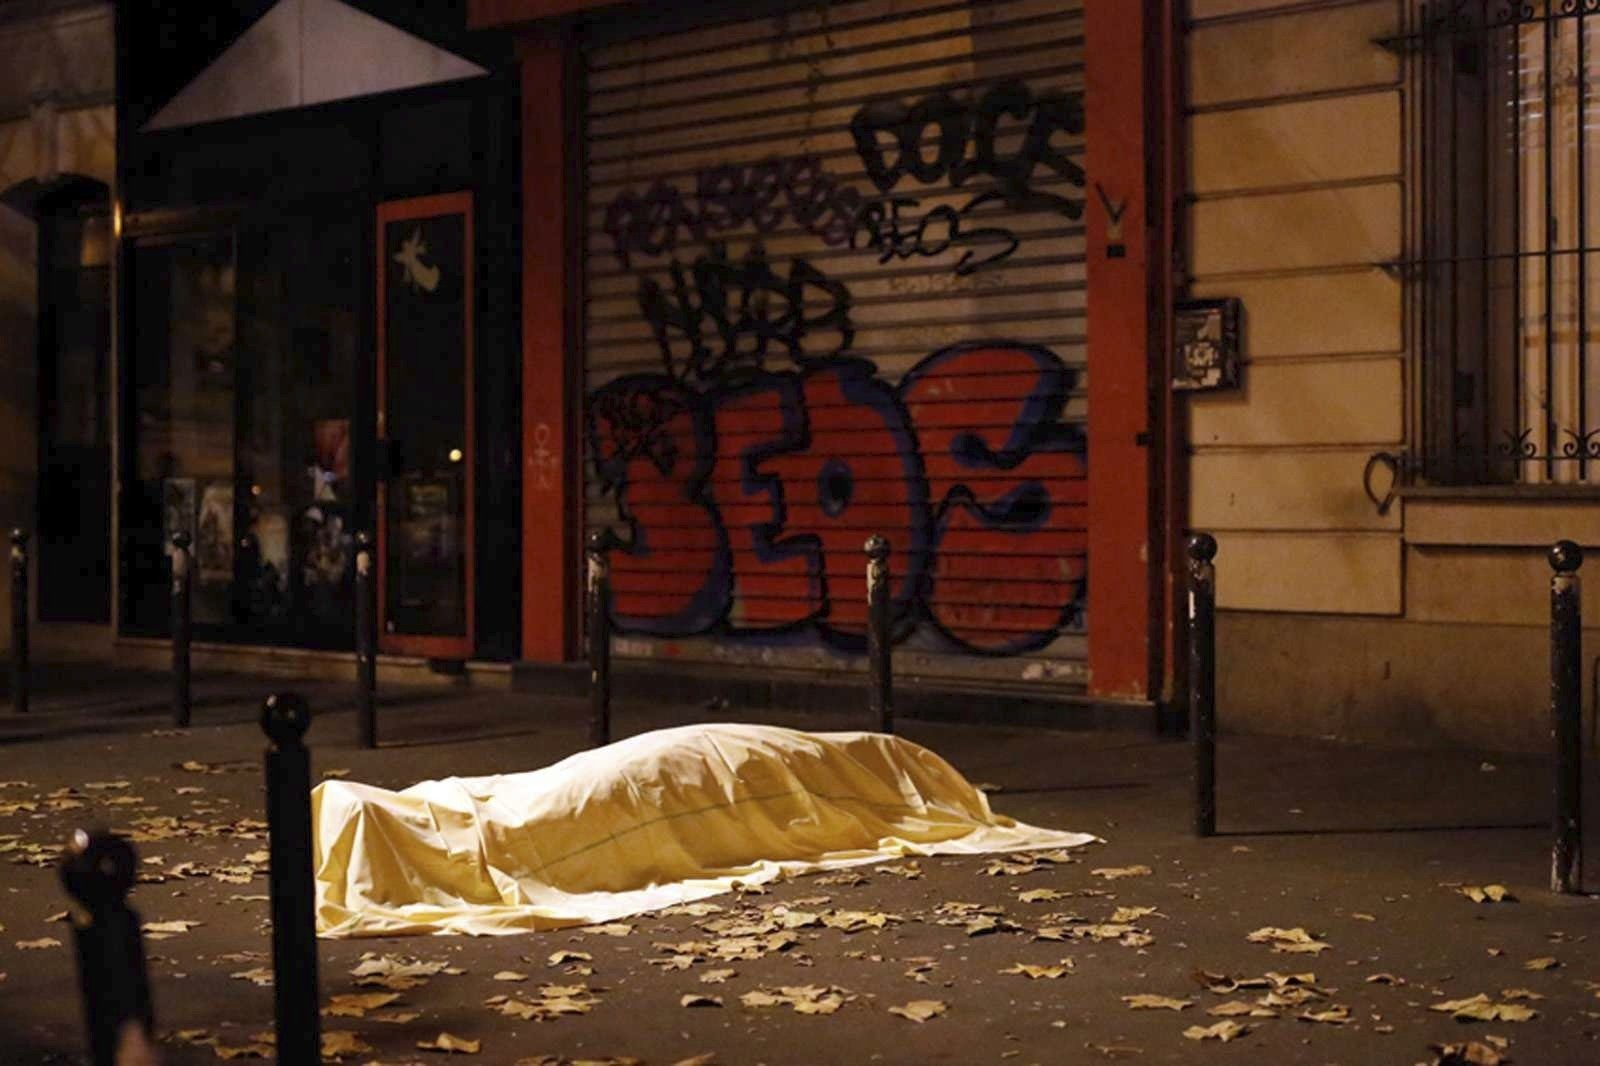 A victim under a blanket lays dead outside the Bataclan theater in Paris. Nov. 13, 2015.